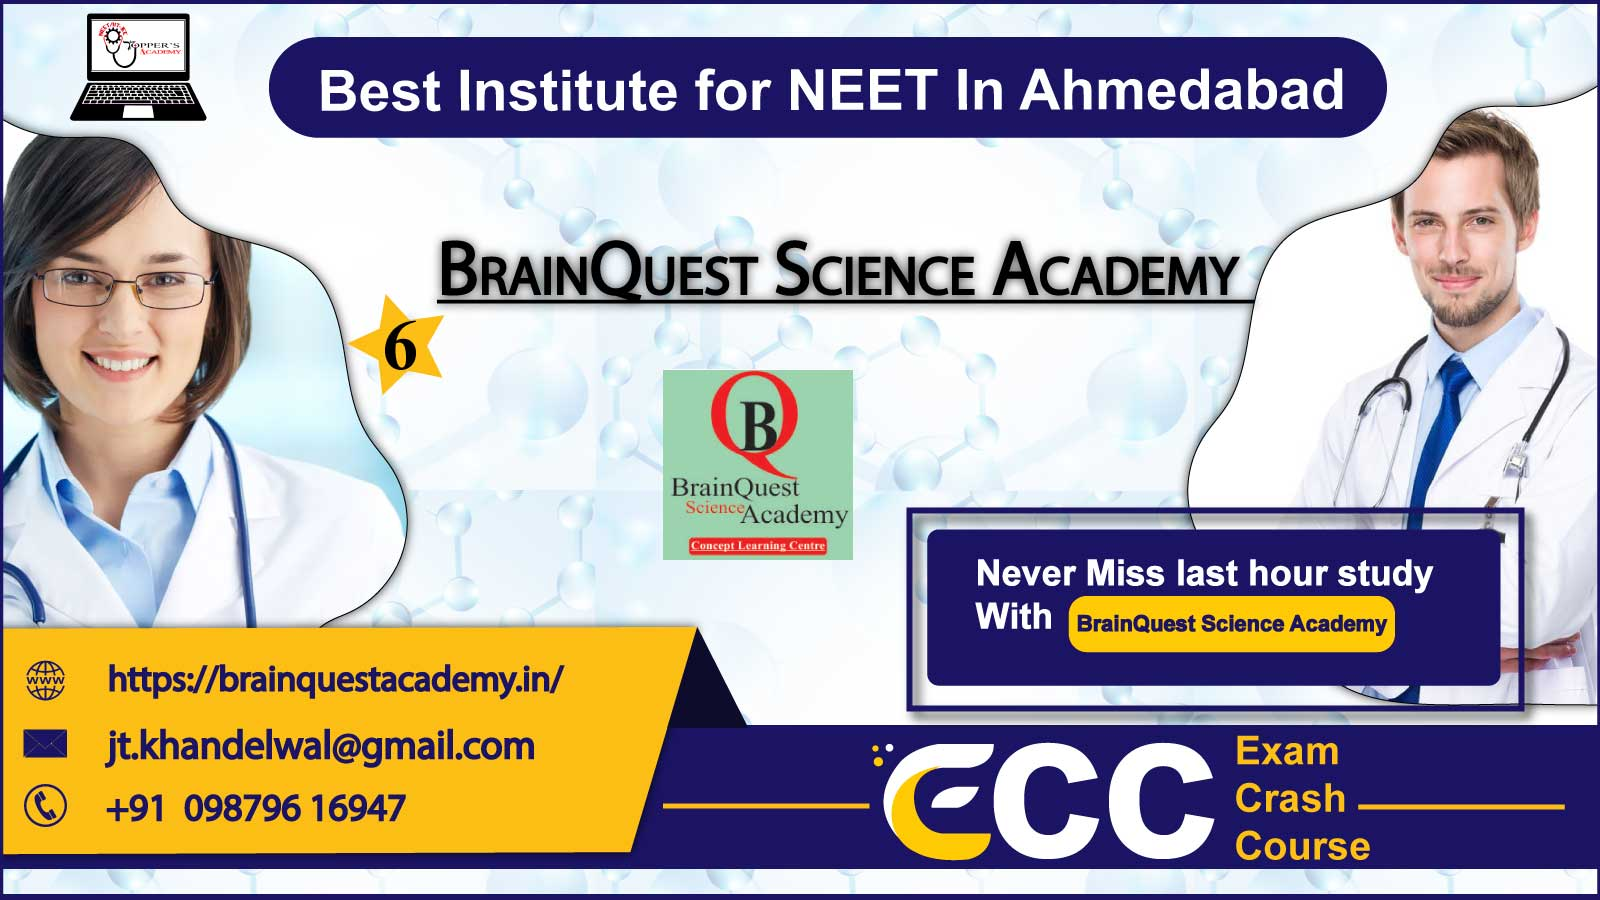 BrainQuest Science NEET Academy in Ahmedabad